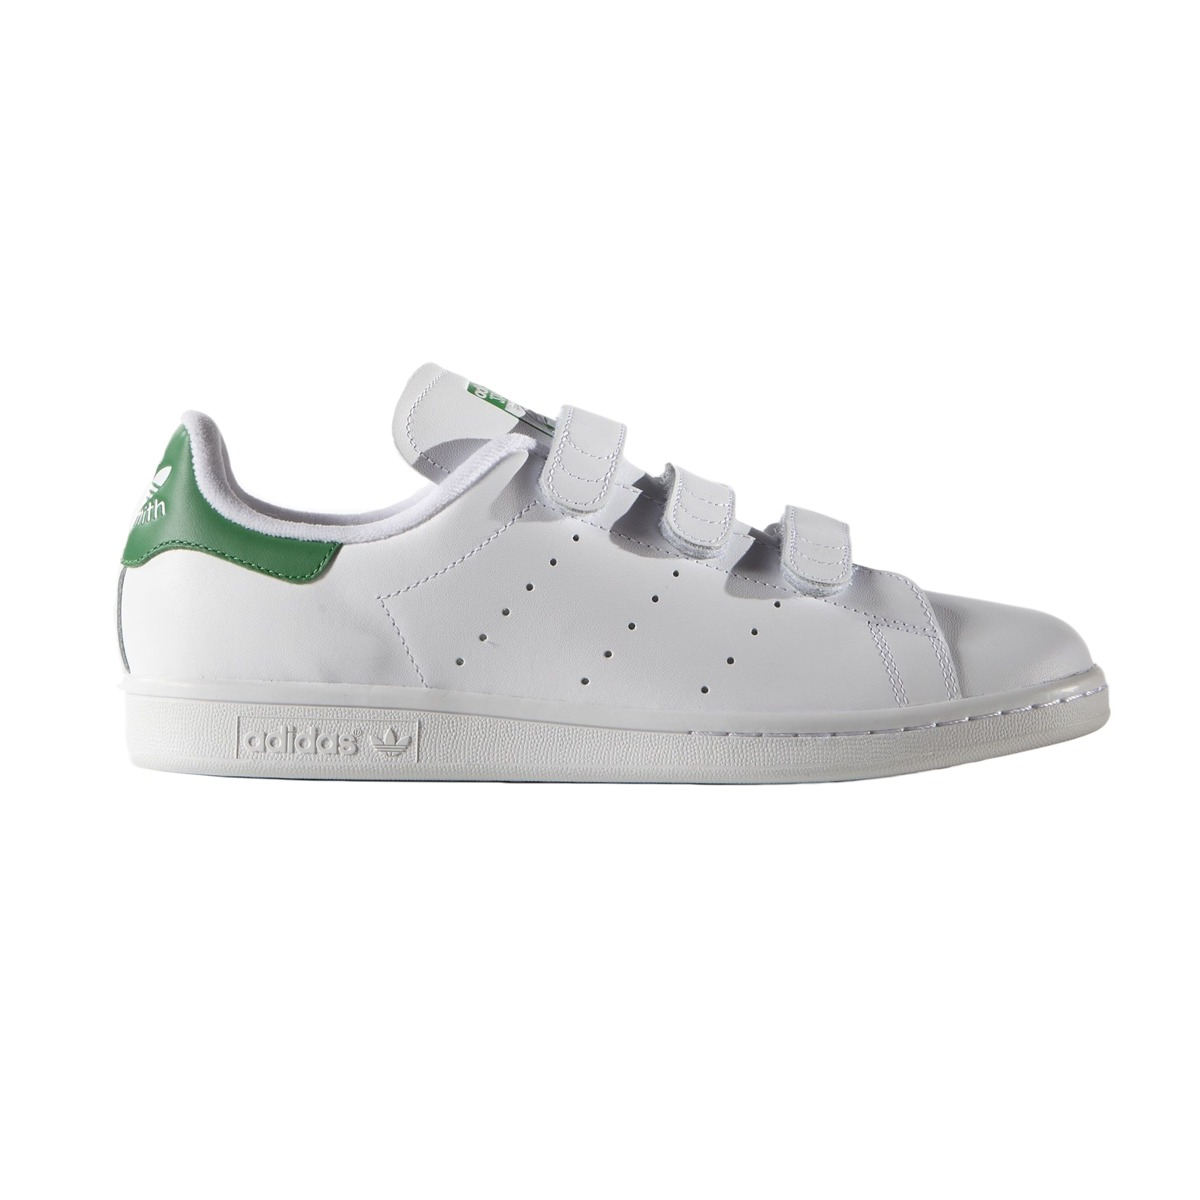 wholesale dealer 26074 70e3c zapatillas adidas originals moda stan smith cf hombre bl vd. Cargando zoom.